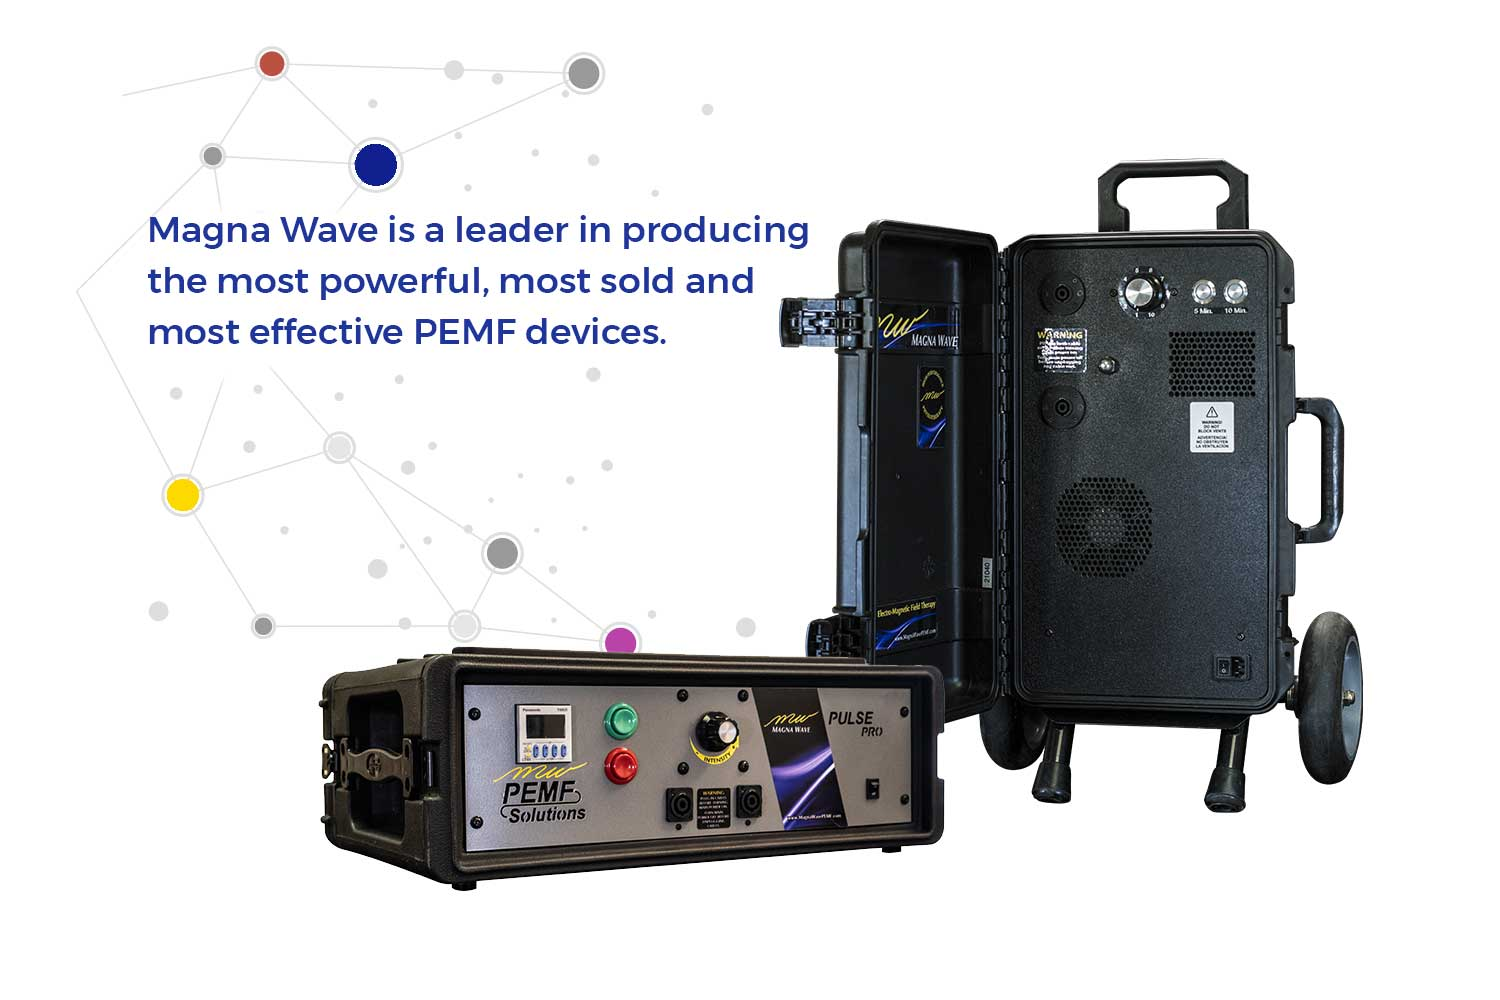 Magna Wave is a leader in producing the most powerful, most sold and most effective PEMF devices.